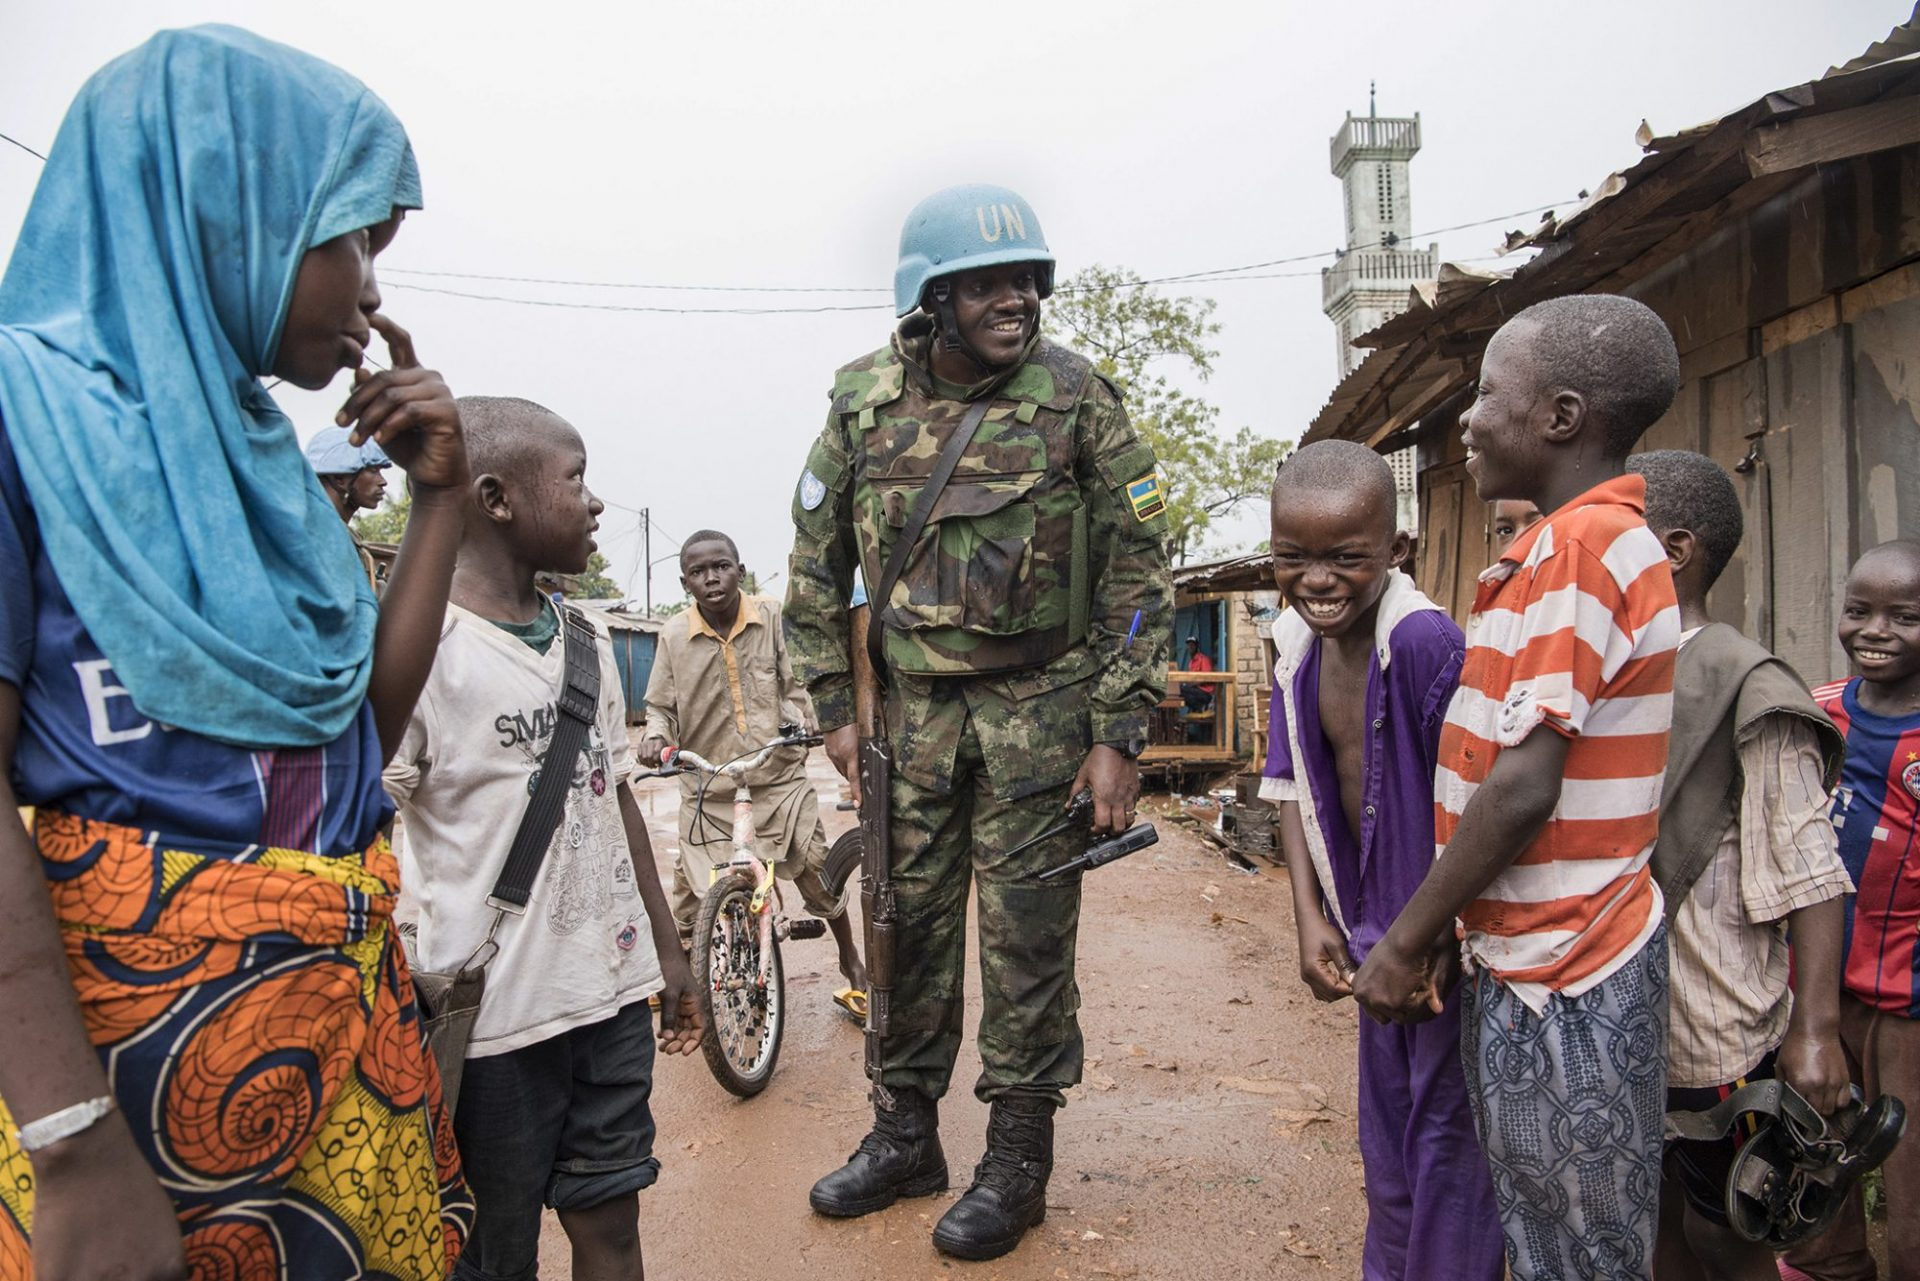 Military and police peacekeepers serving with the UN Multidimensional Integrated Stabilization Mission in the Central African Republic (MINUSCA) patrol the Muslim enclave of PK5 in Bangui. UN Photo/Eskinder Debebe